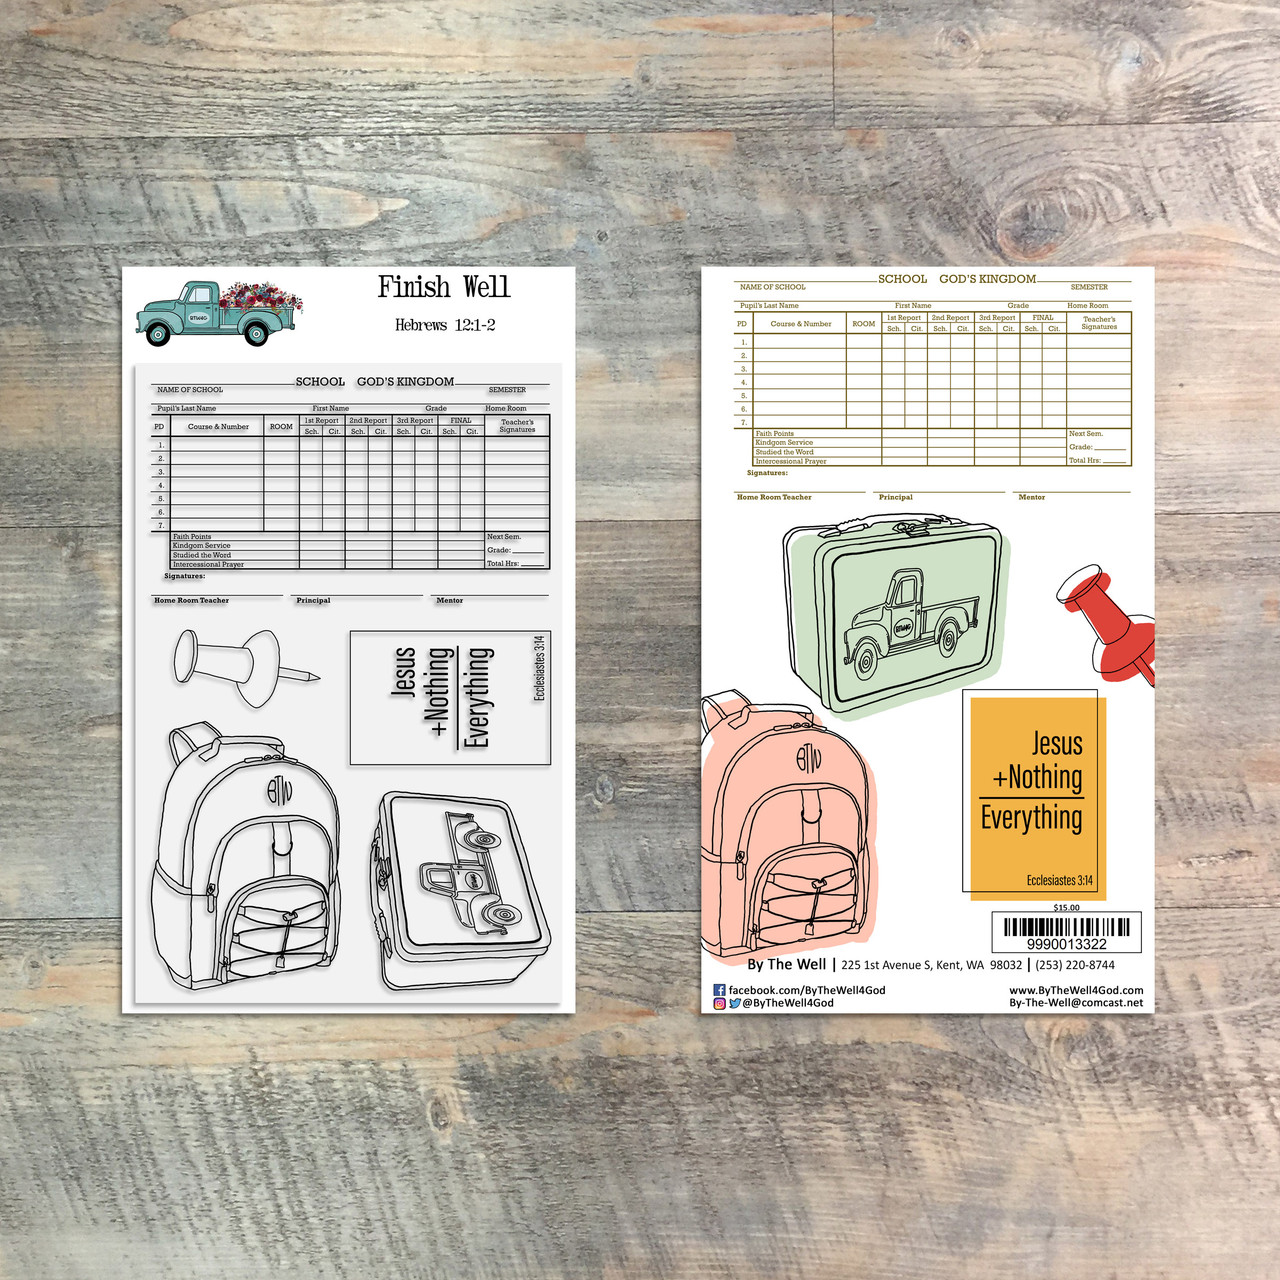 Finish Well - Back to School Stamp - 5 Piece 4x6 Stamp Set